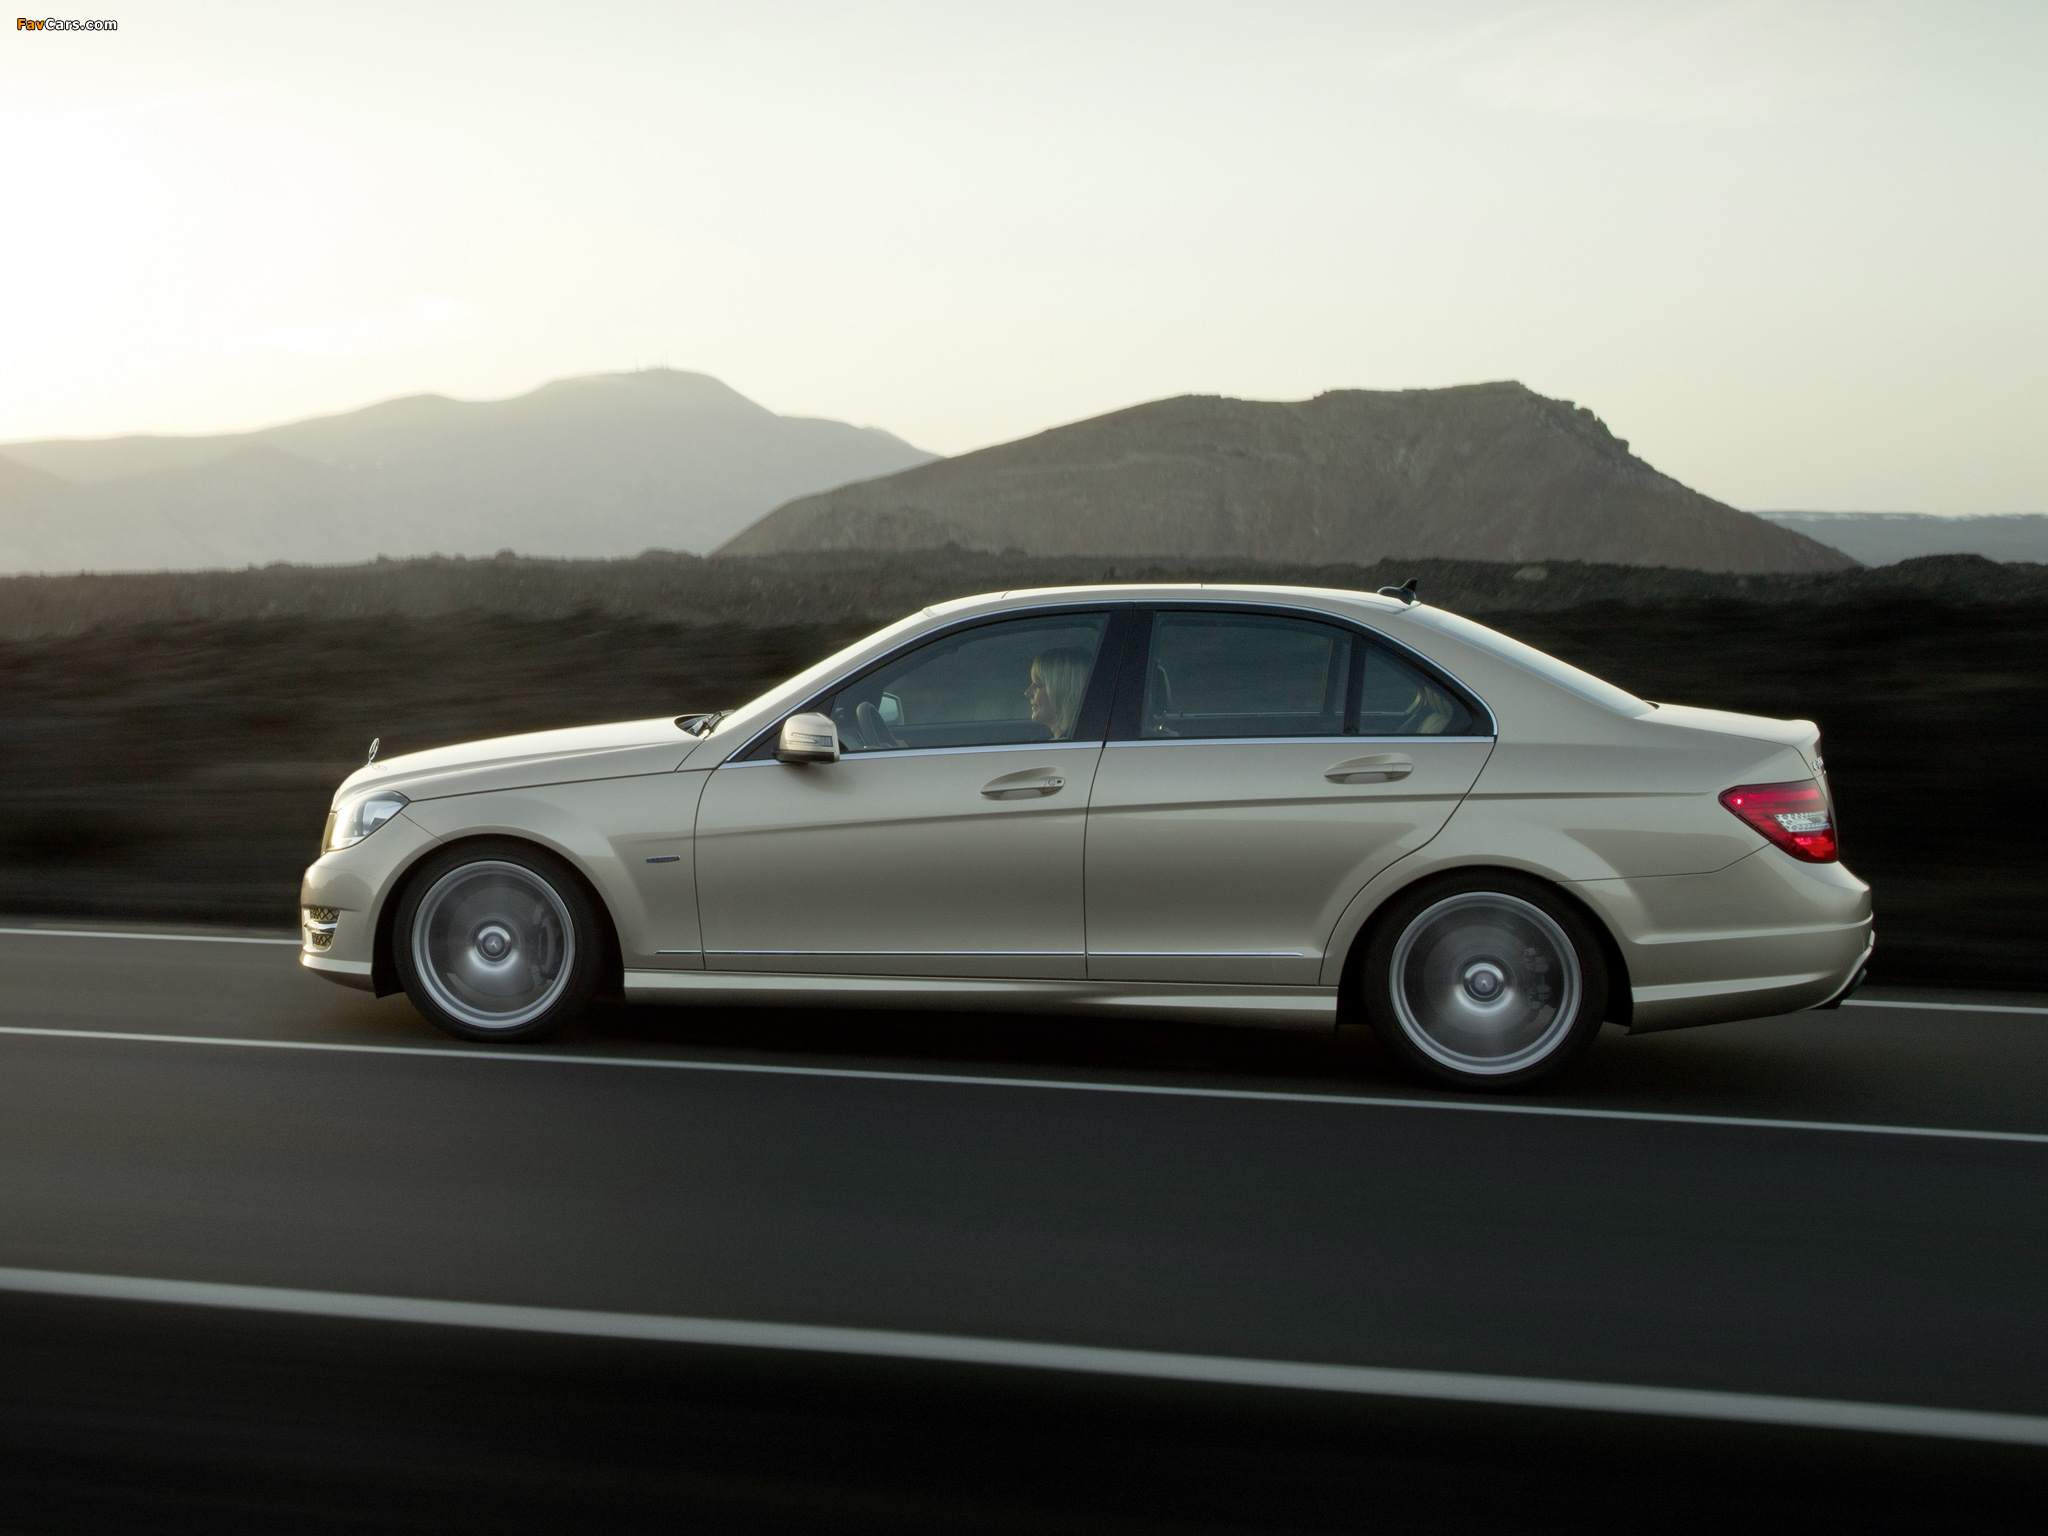 Mercedes-Benz C 350 AMG Sports Package (W204) 2011 photos (2048 x 1536)